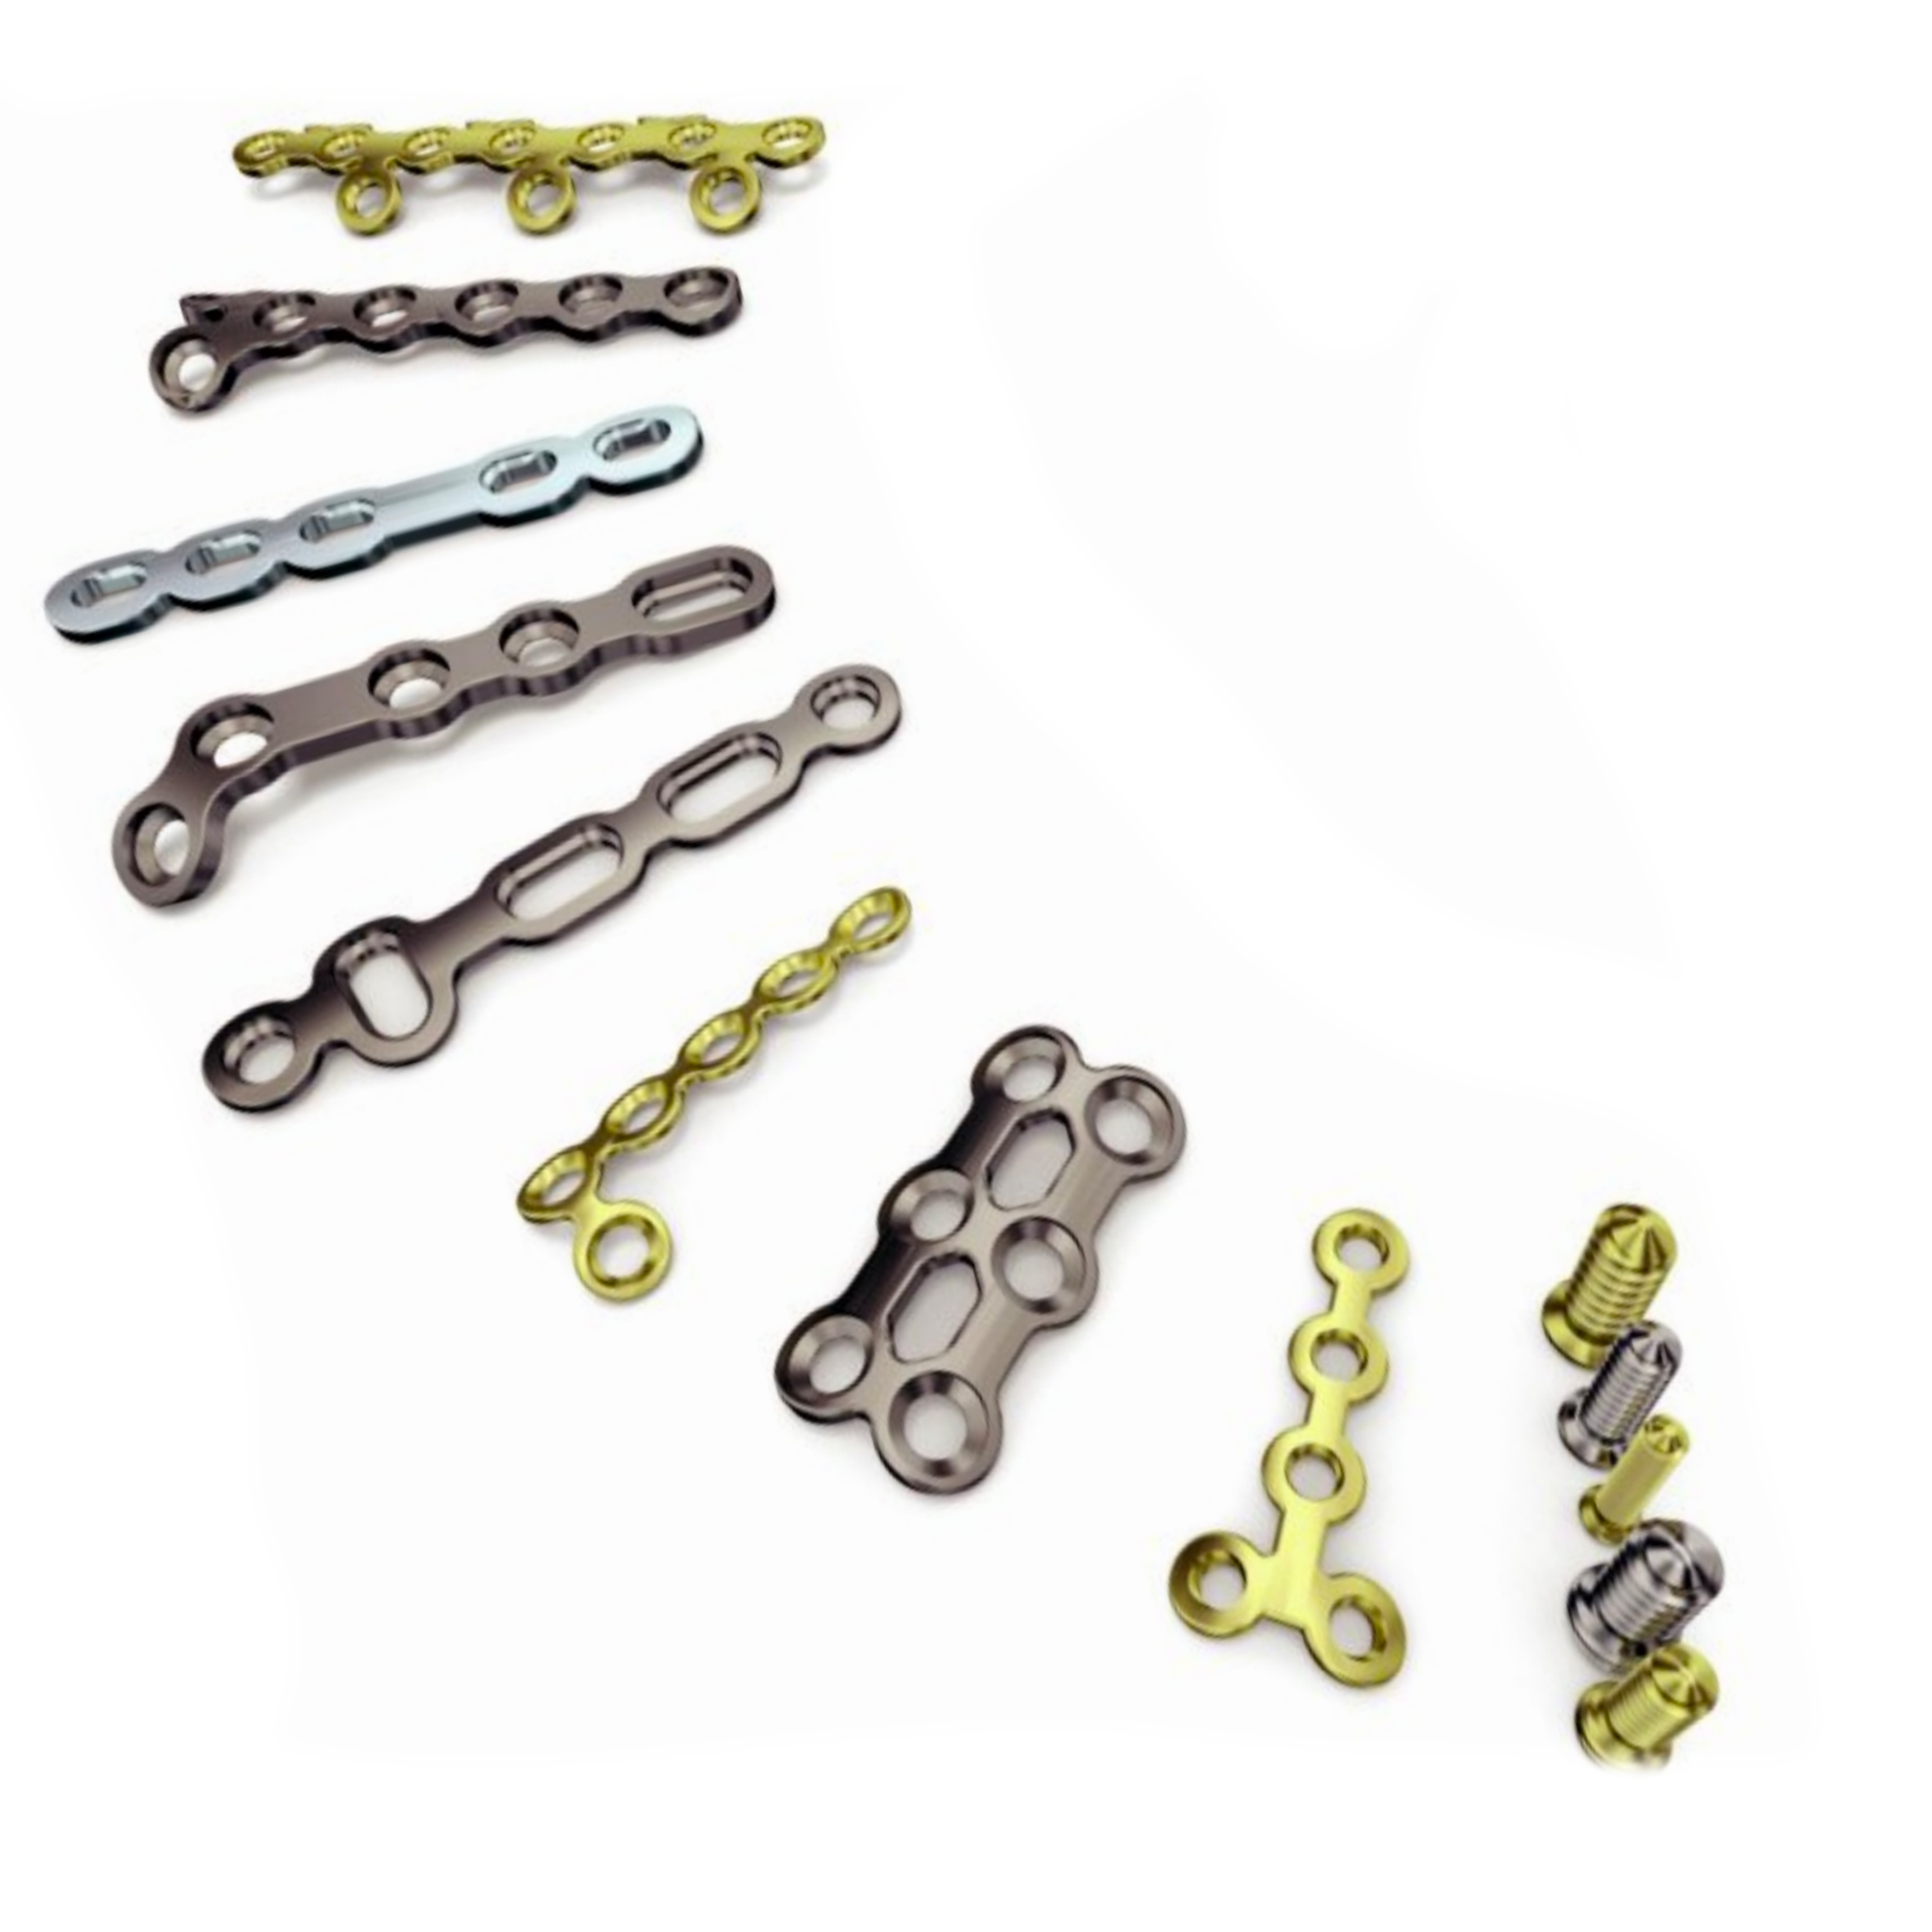 VariAx Hand Plating System | The VariAx Hand Locking Plate Module is a plating system which offers the potential benefits of variable angled locking plates and screws for 1.7mm and 2.3mm implant sizes.